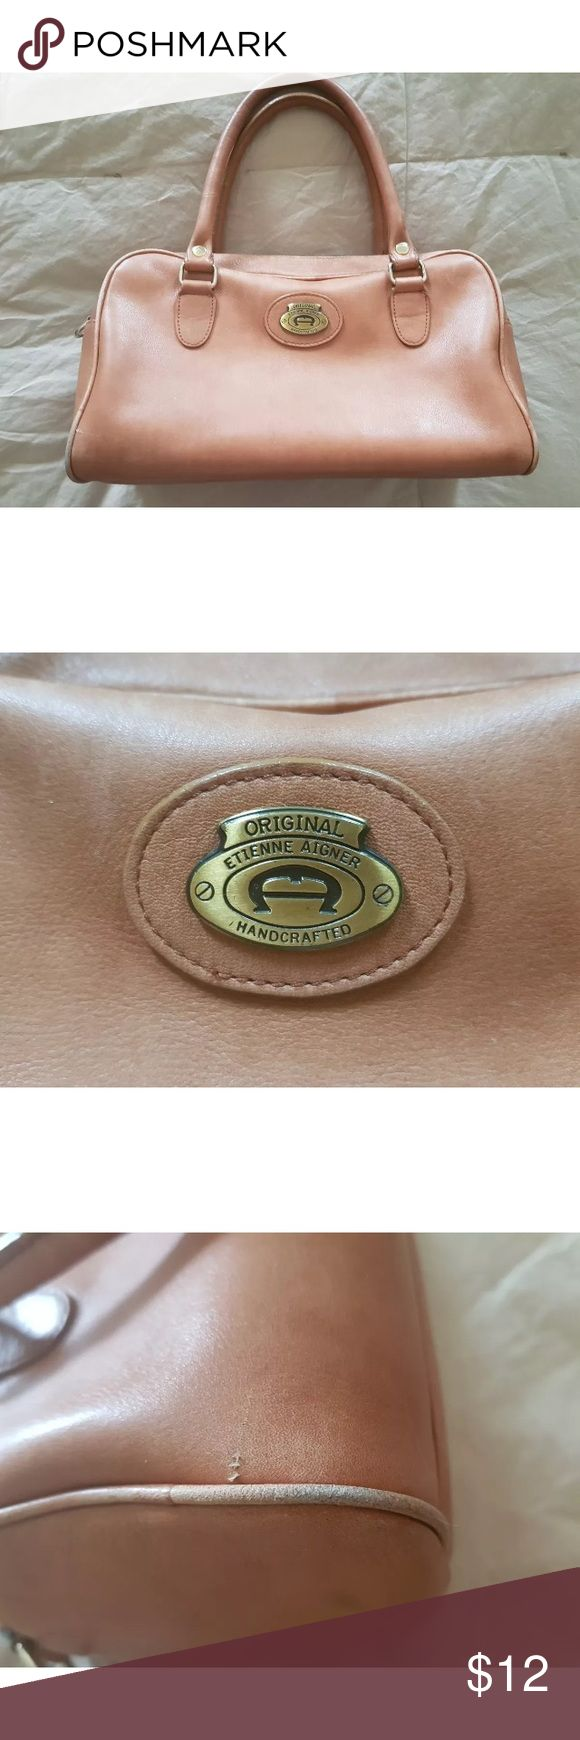 Etienne aigner small handbag All defects are pictured Etienne Aigner Bags